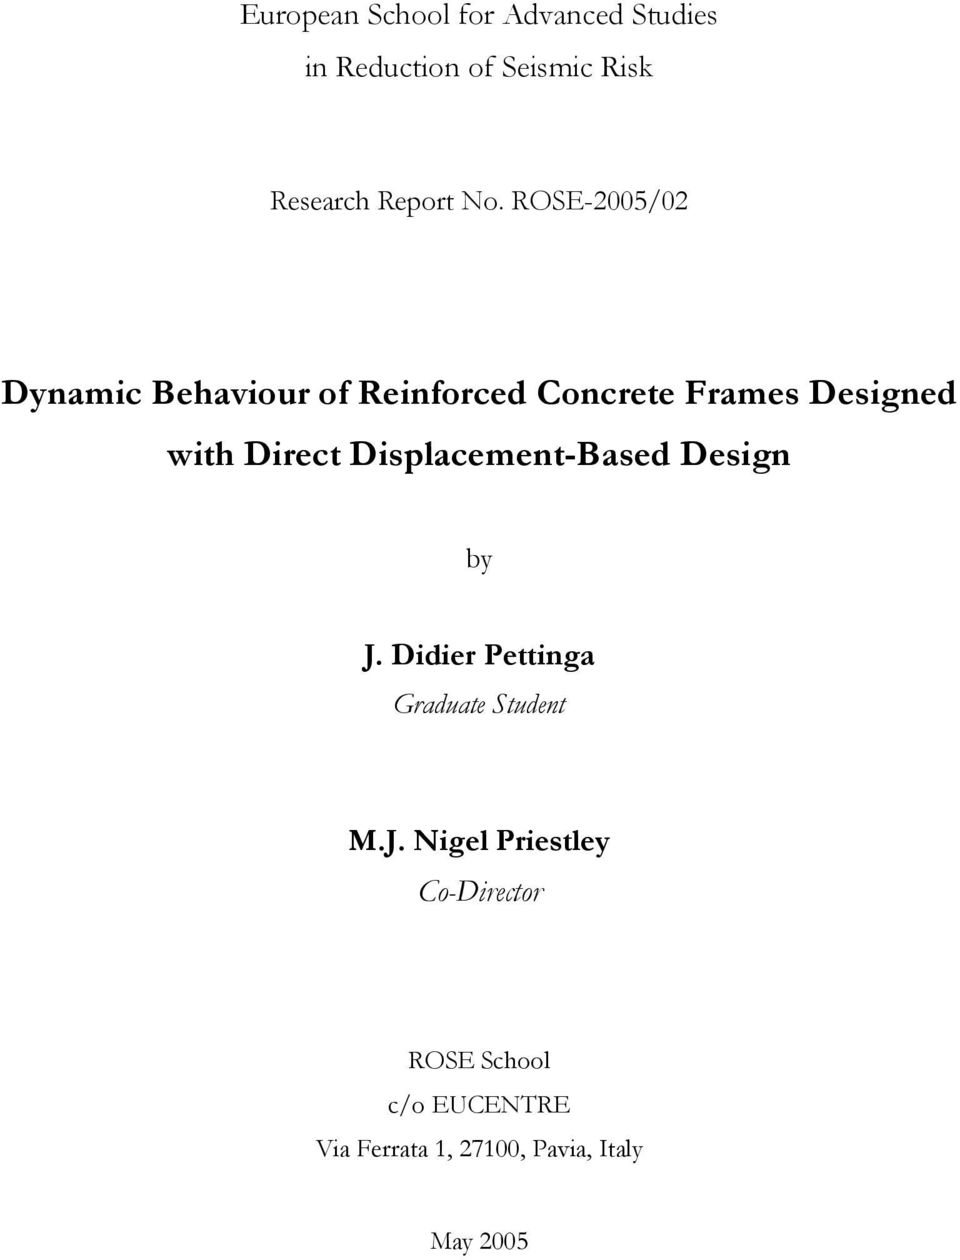 ROSE-/ Dynamic Behaviour of Reinforced Concrete Frames ed with Direct